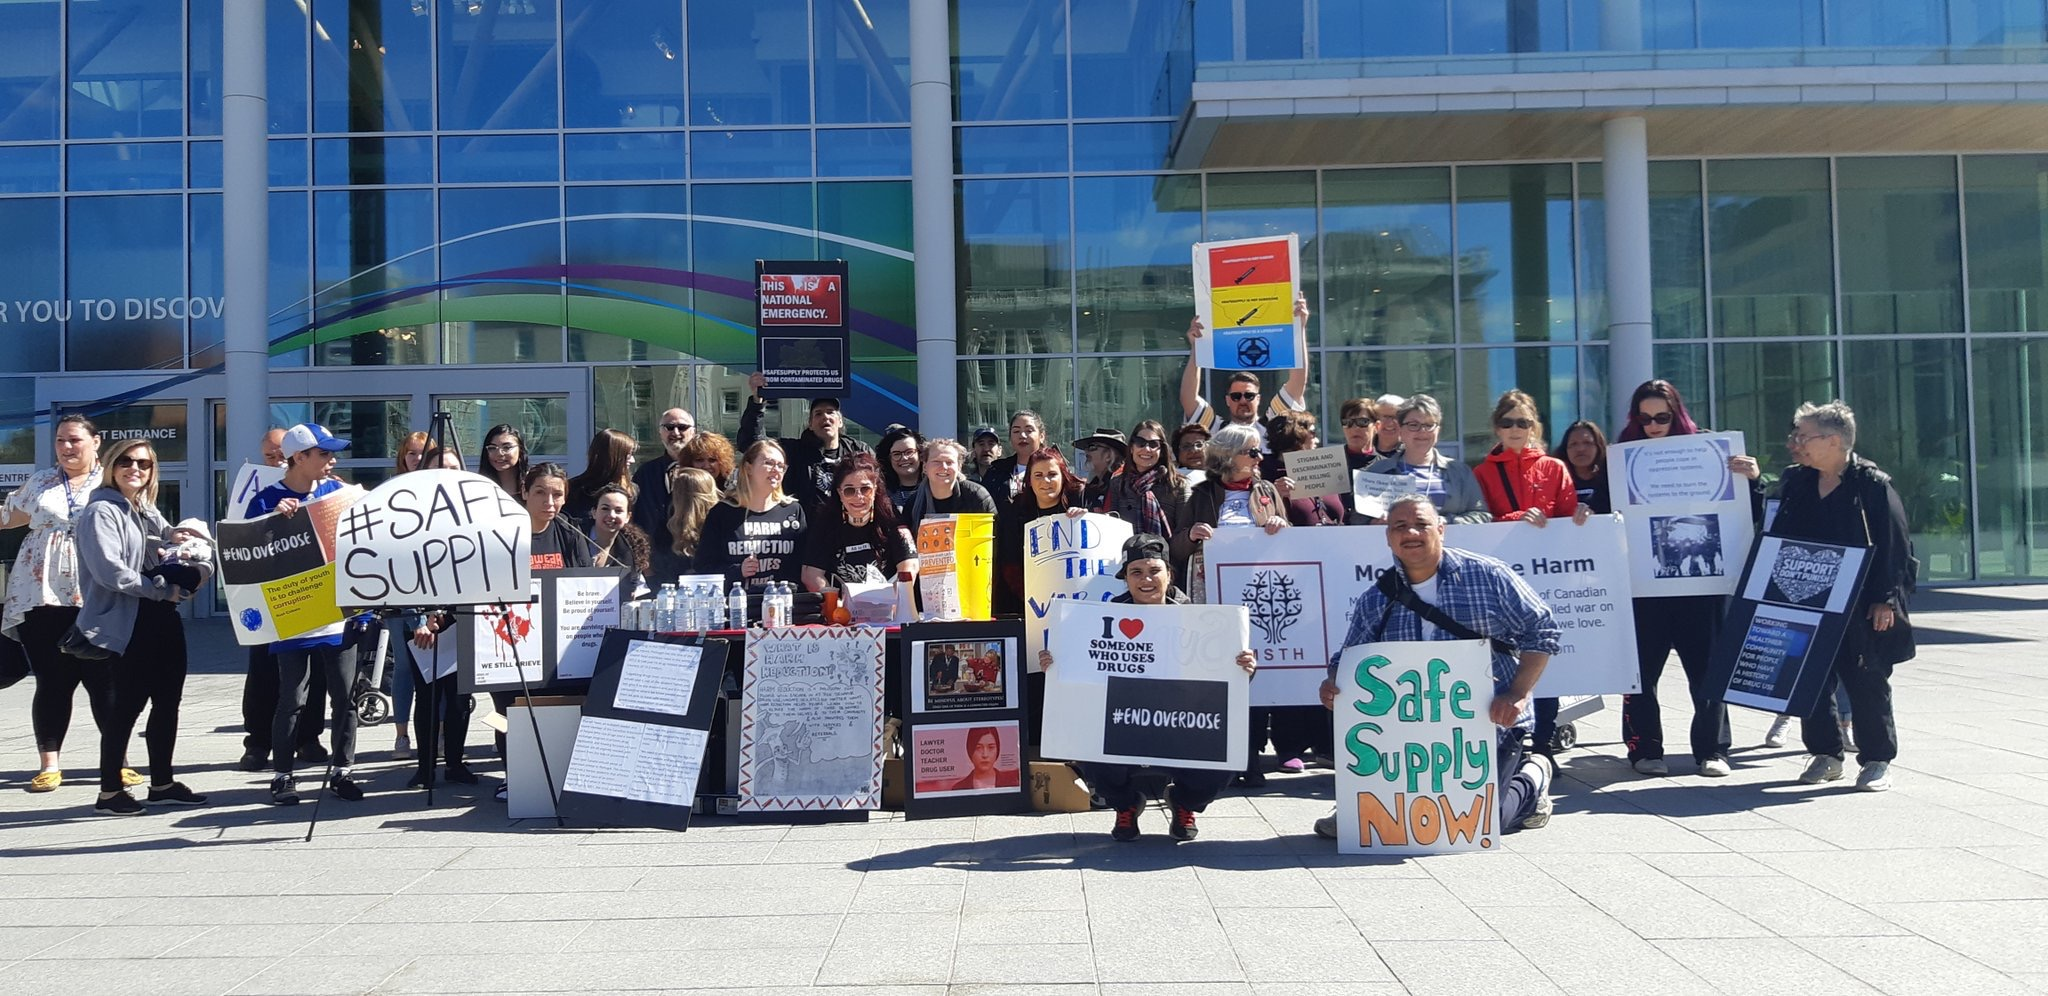 2019-03-16 YEG Day of action group.JPG